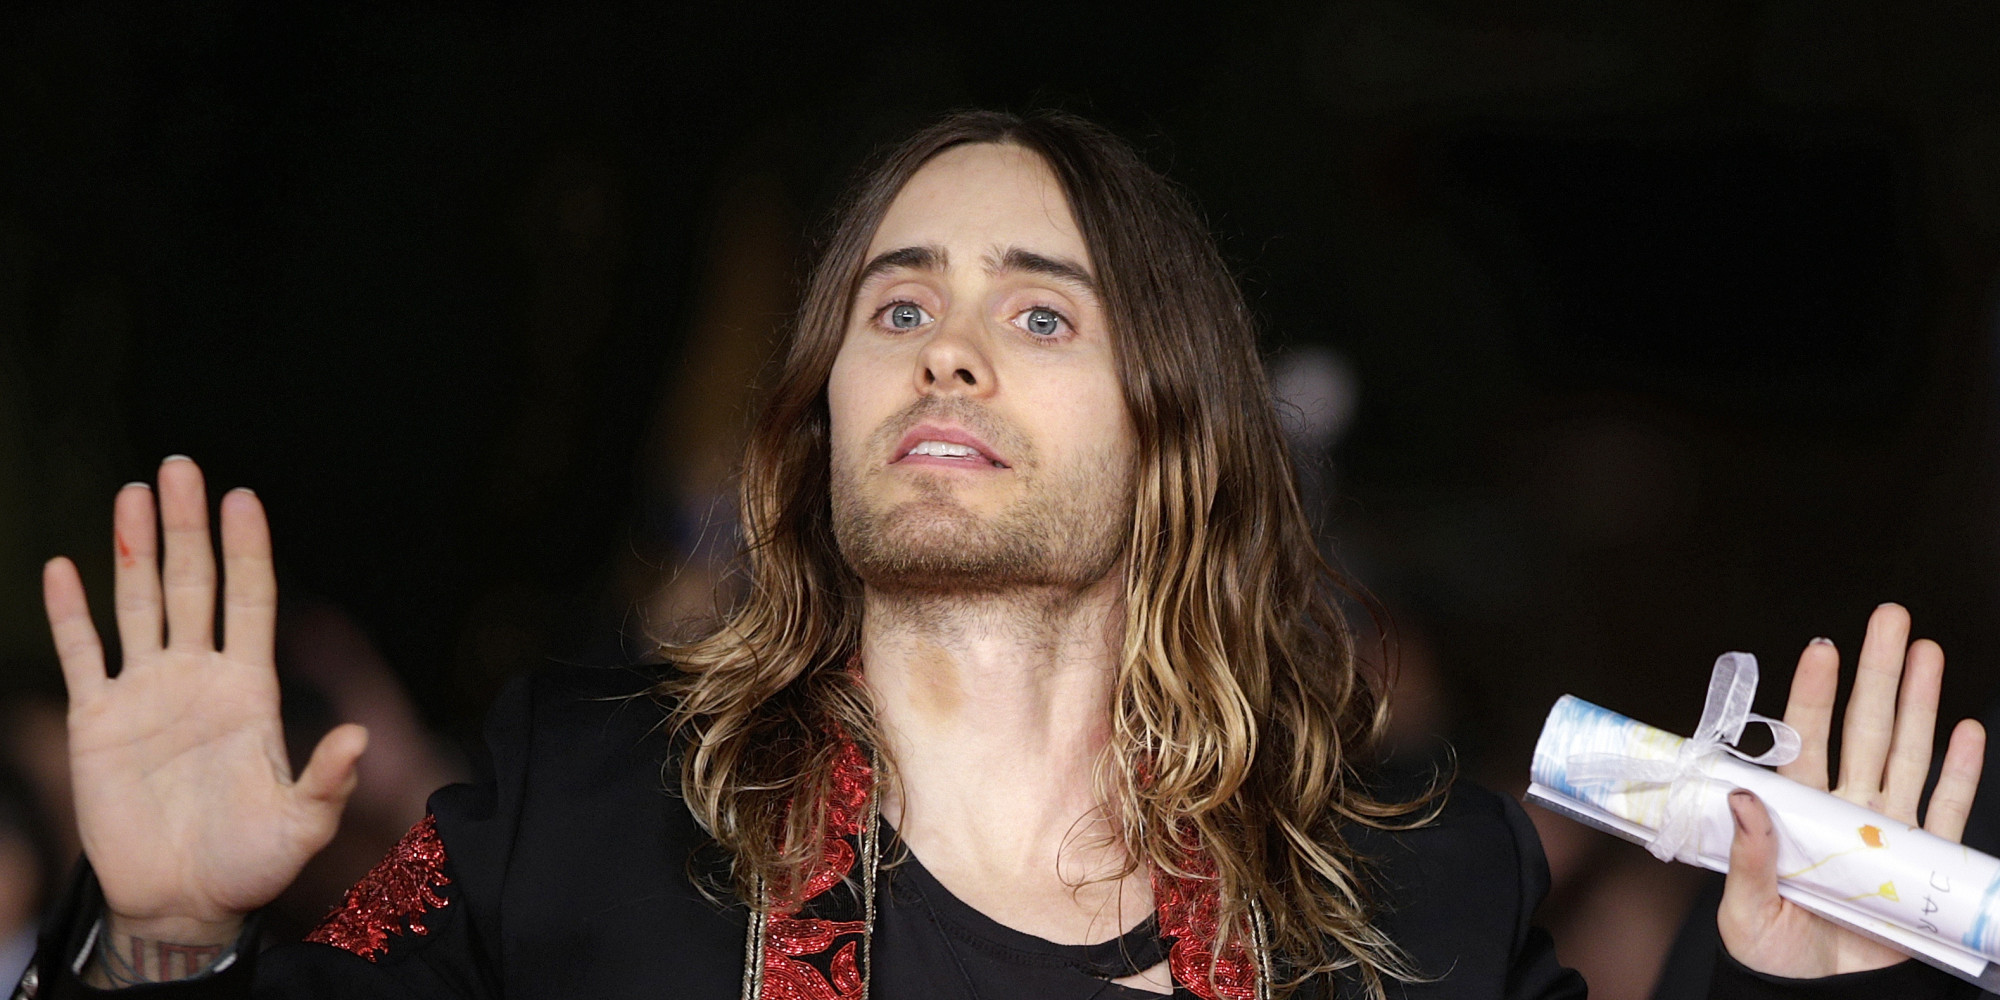 Composer and director Jared Leto arrives for the screening of the movie 'Dallas Buyers Club' at the 8th edition of the Rome International Film Festival in Rome, Saturday, Nov. 9, 2013. (AP Photo/Andrew Medichini)